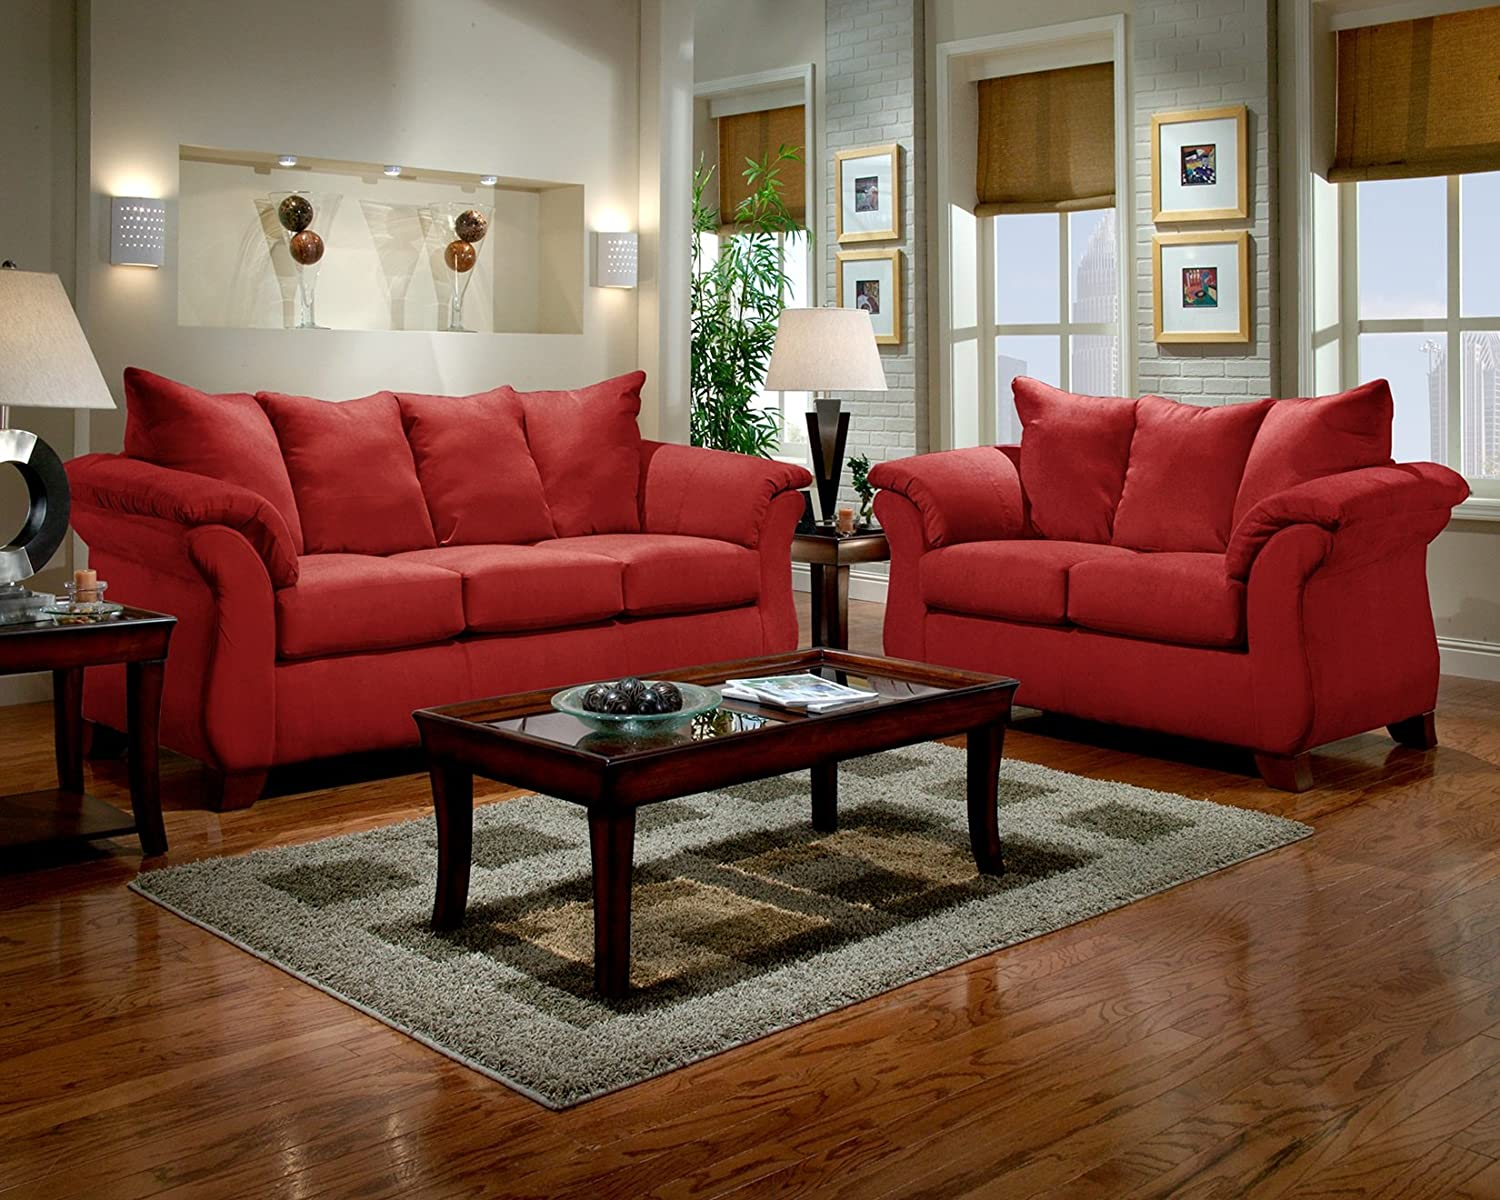 Amazon: Roundhill Furniture Sensations Microfiber Pillow Back Sofa And  Loveseat Set, Red: Kitchen & Dining